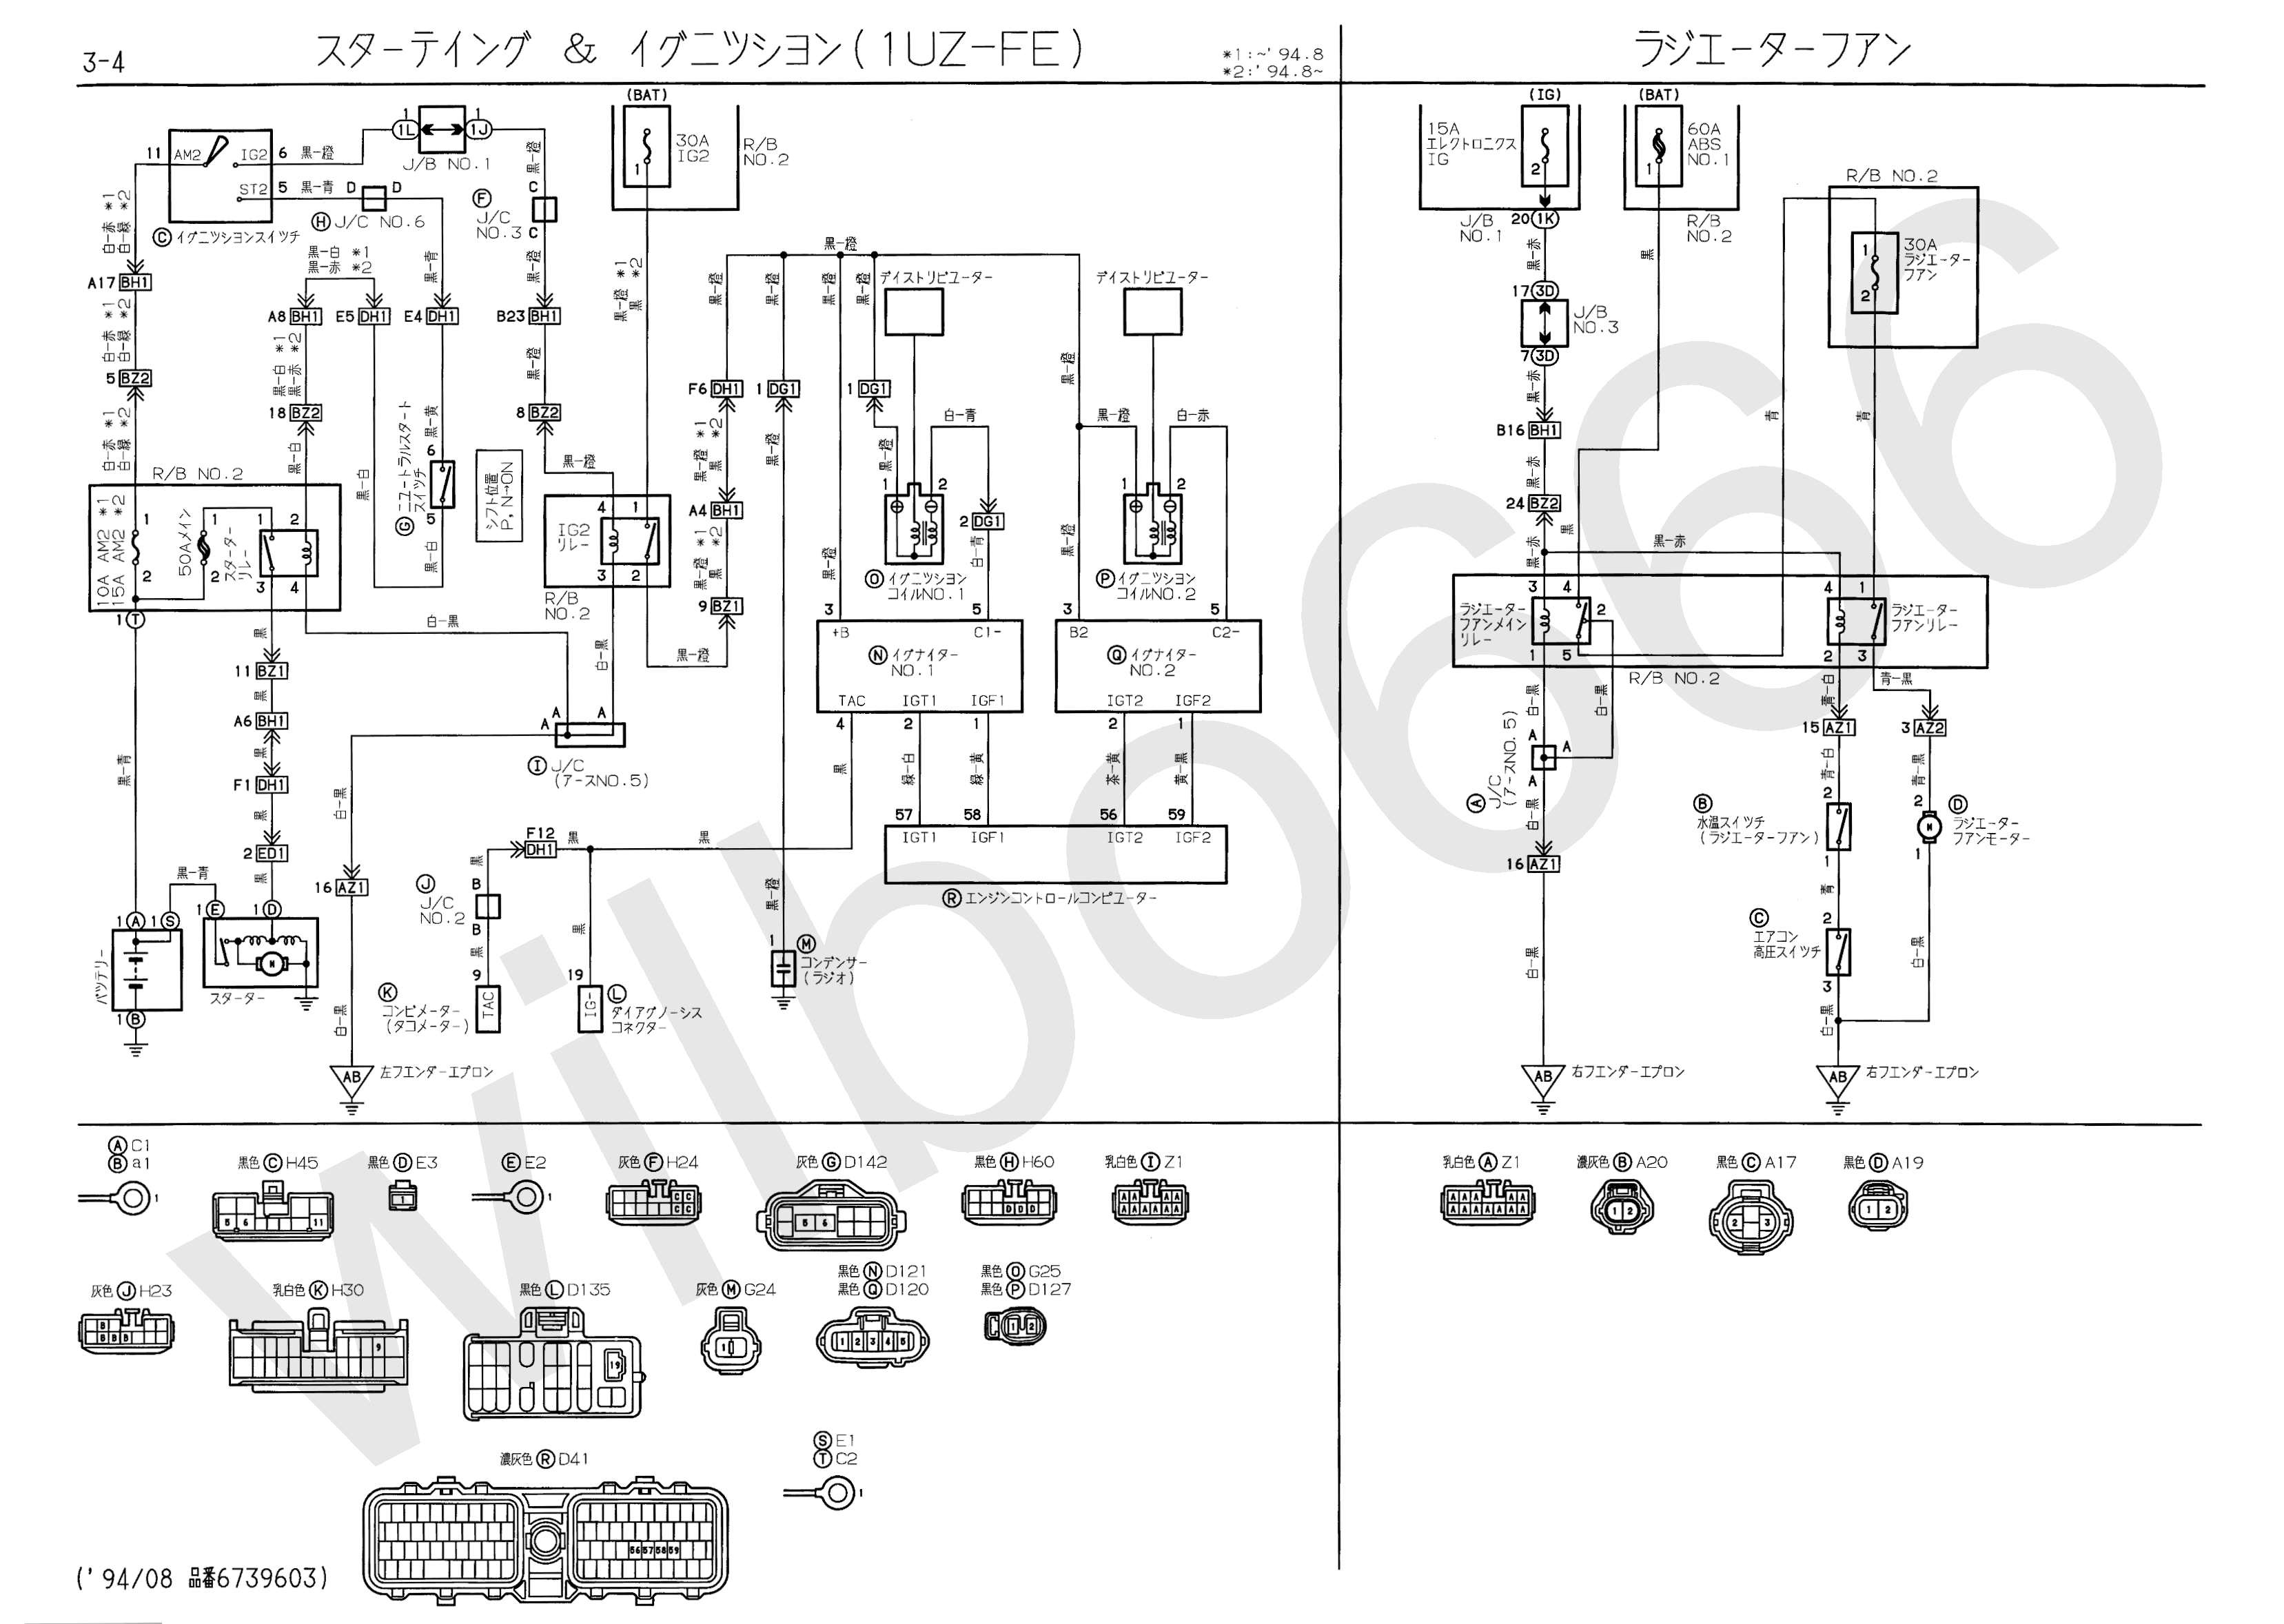 JZS14%23%2C UZS14%23 Electrical Wiring Diagram 6739604 3 4 wilbo666 1uz fe uzs143 aristo engine wiring 4.3 Vortec Wiring-Diagram at readyjetset.co